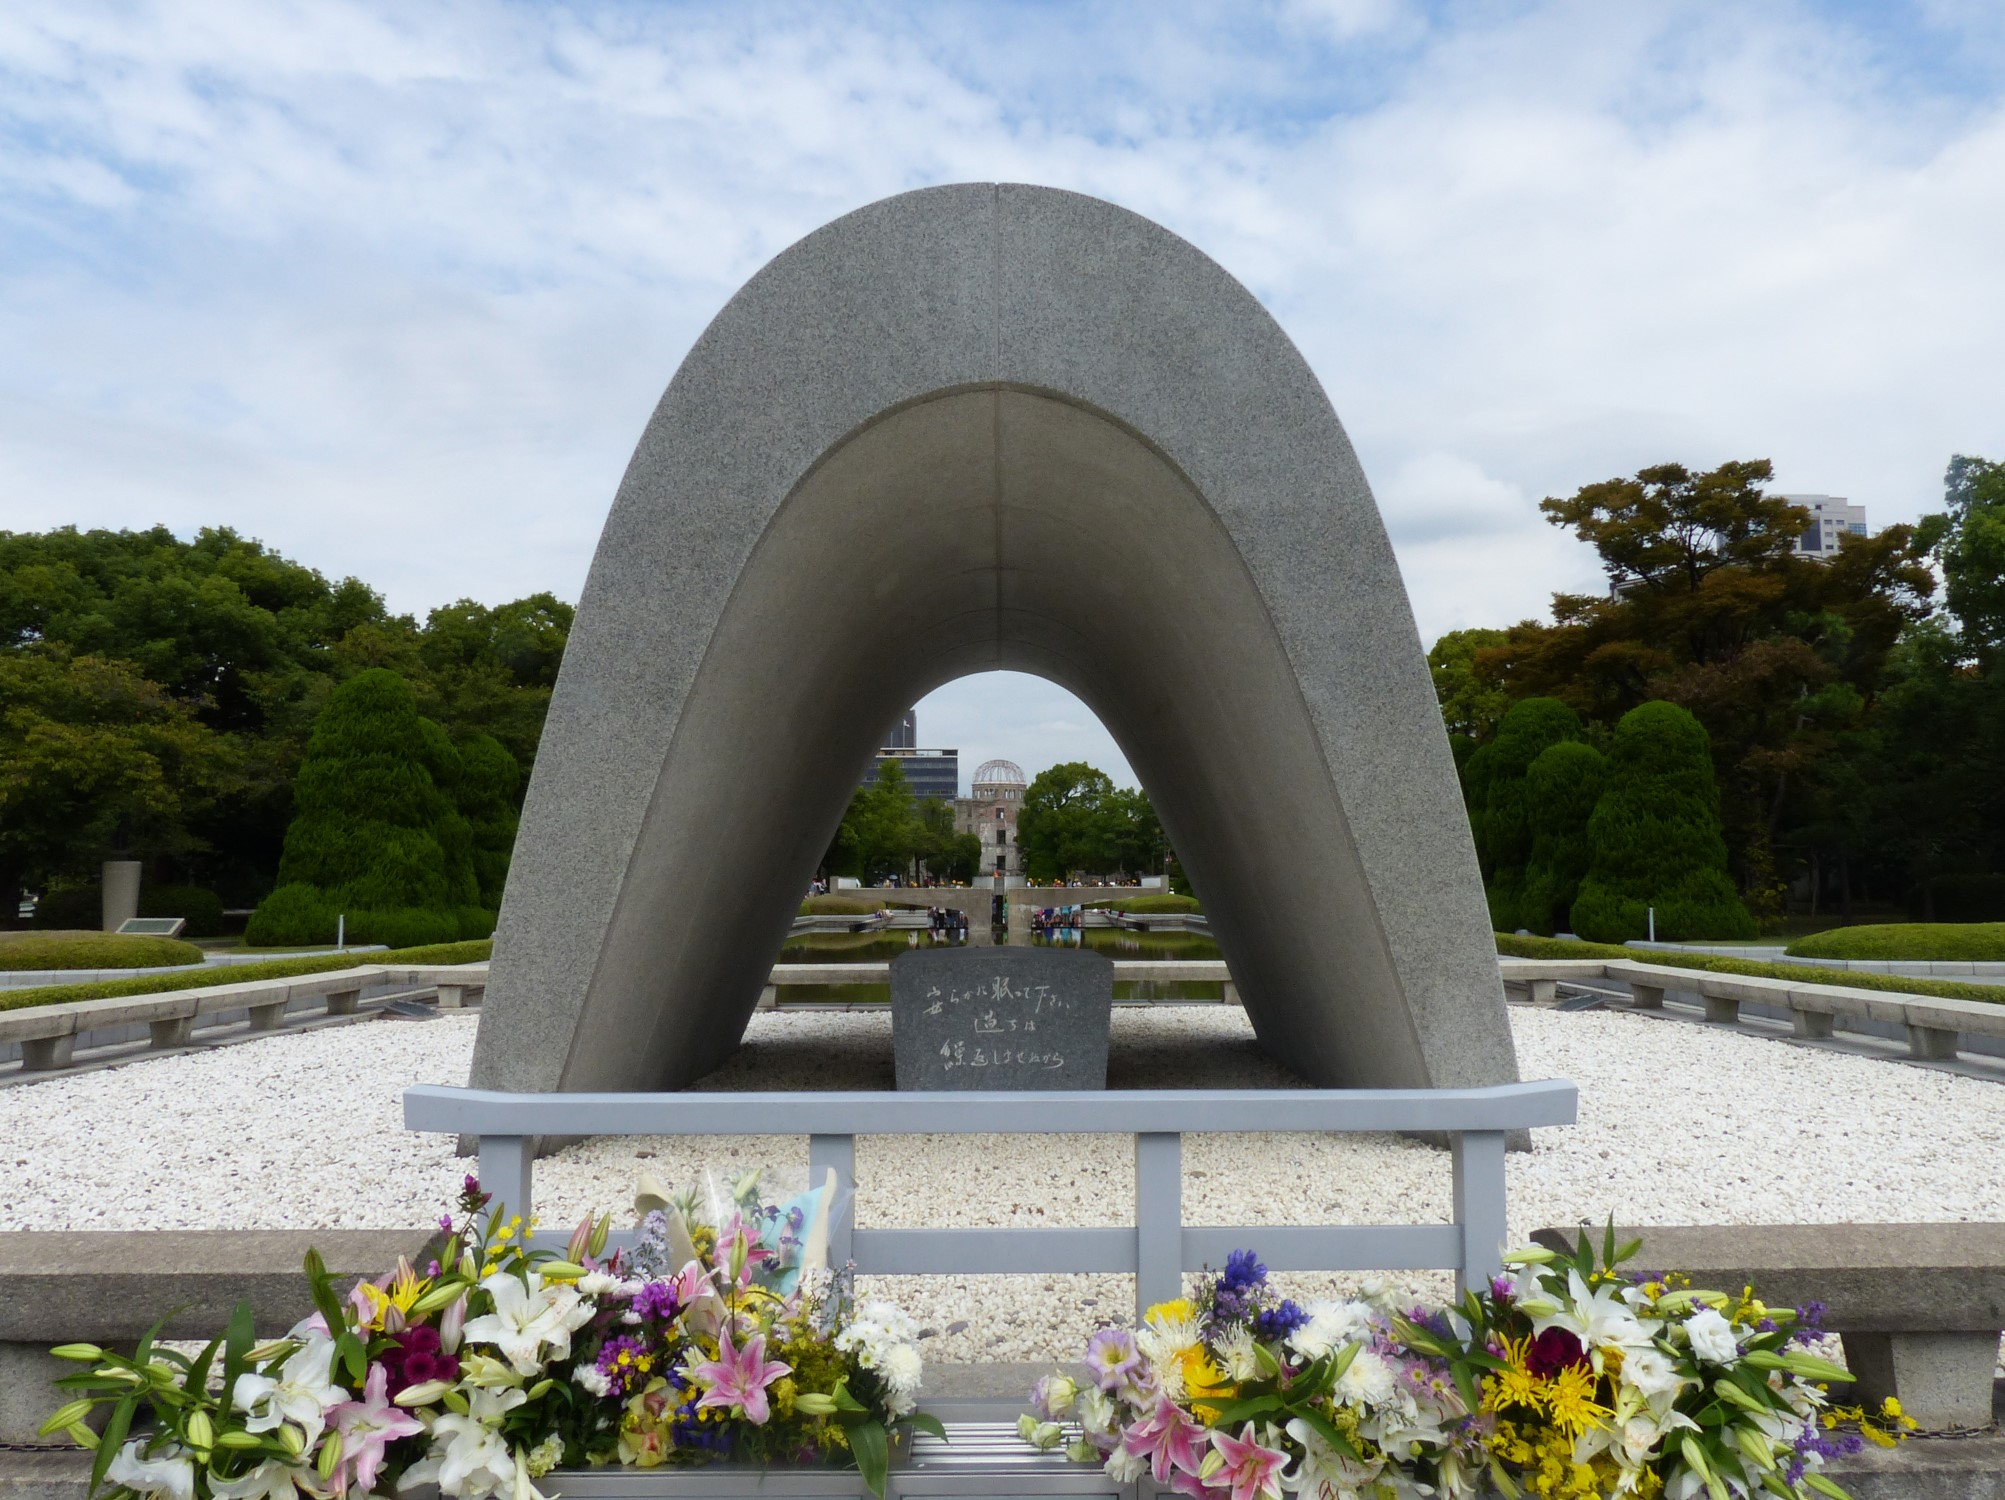 The Cenotaph in the Hiroshima Peace Park